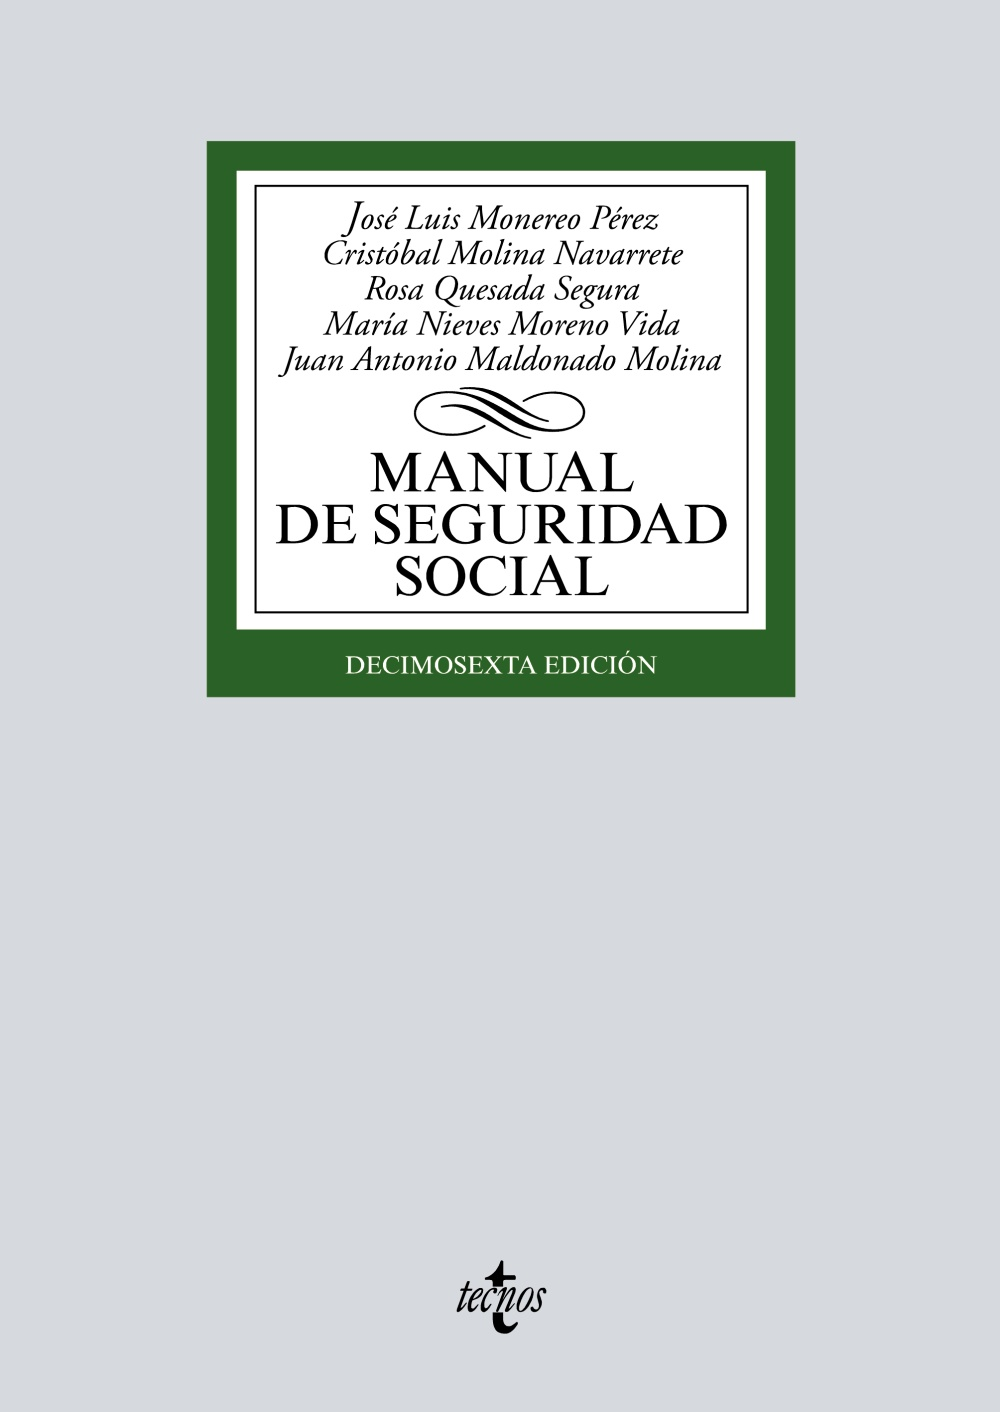 Manual de Seguridad Social